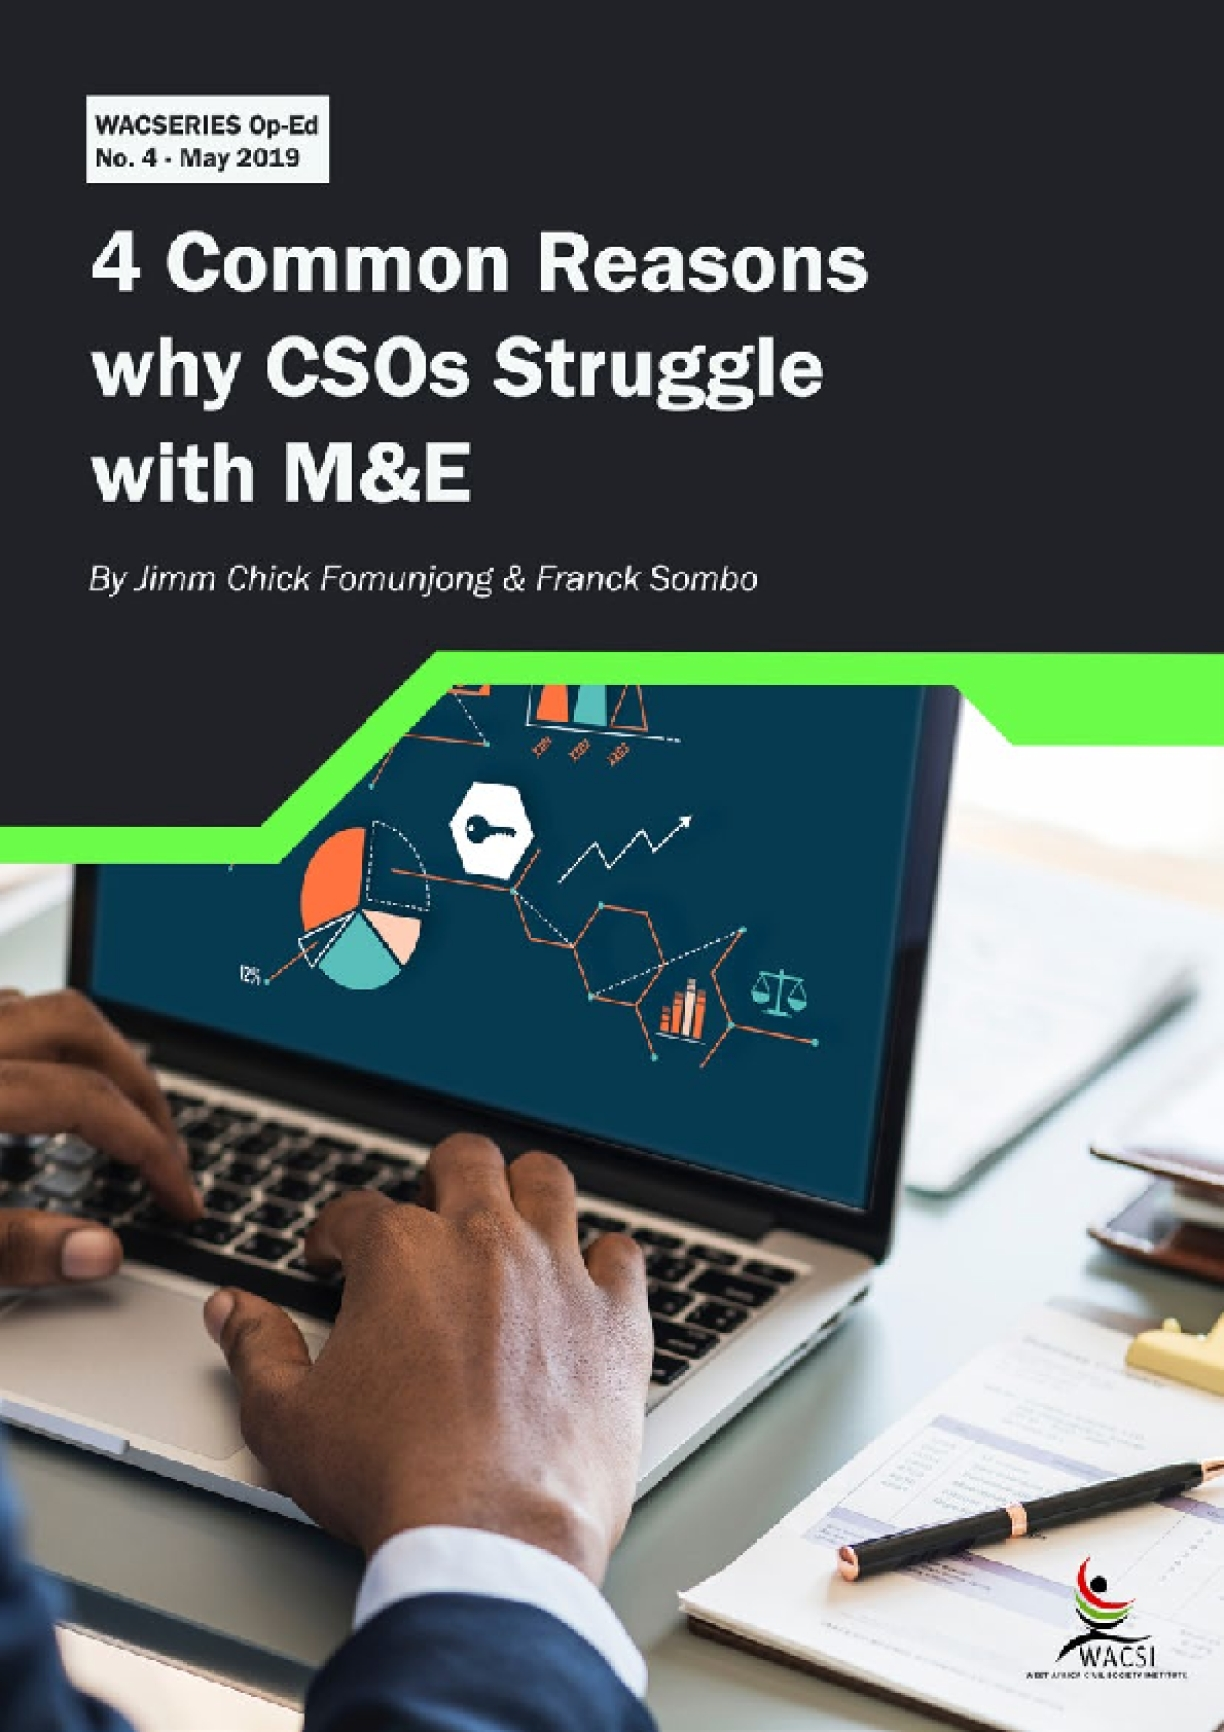 4 Common Reasons why CSOs Struggle with M&E